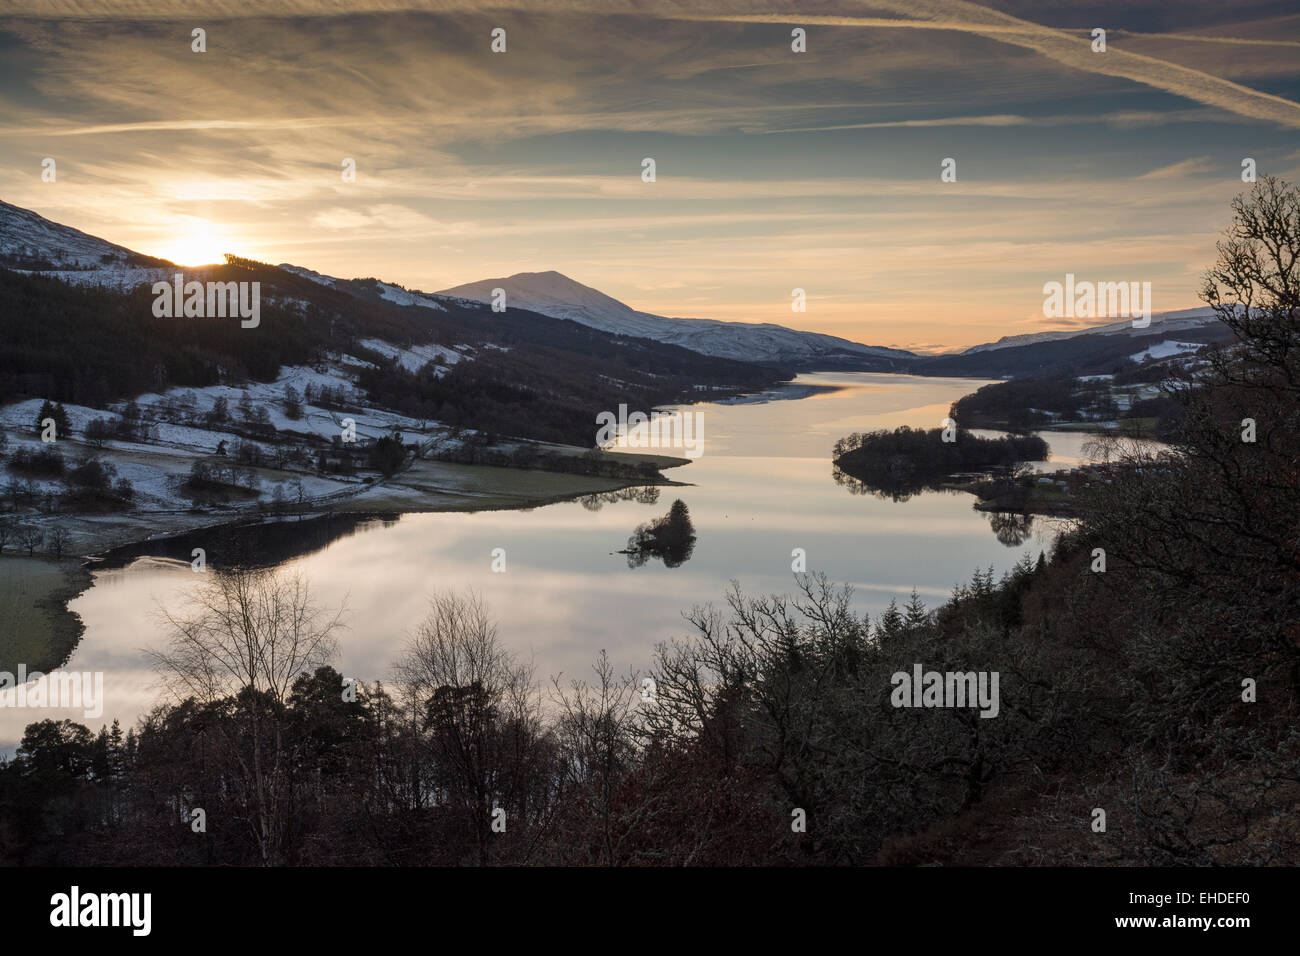 queen's view loch tummel at sunset in winter, perthshire - Stock Image